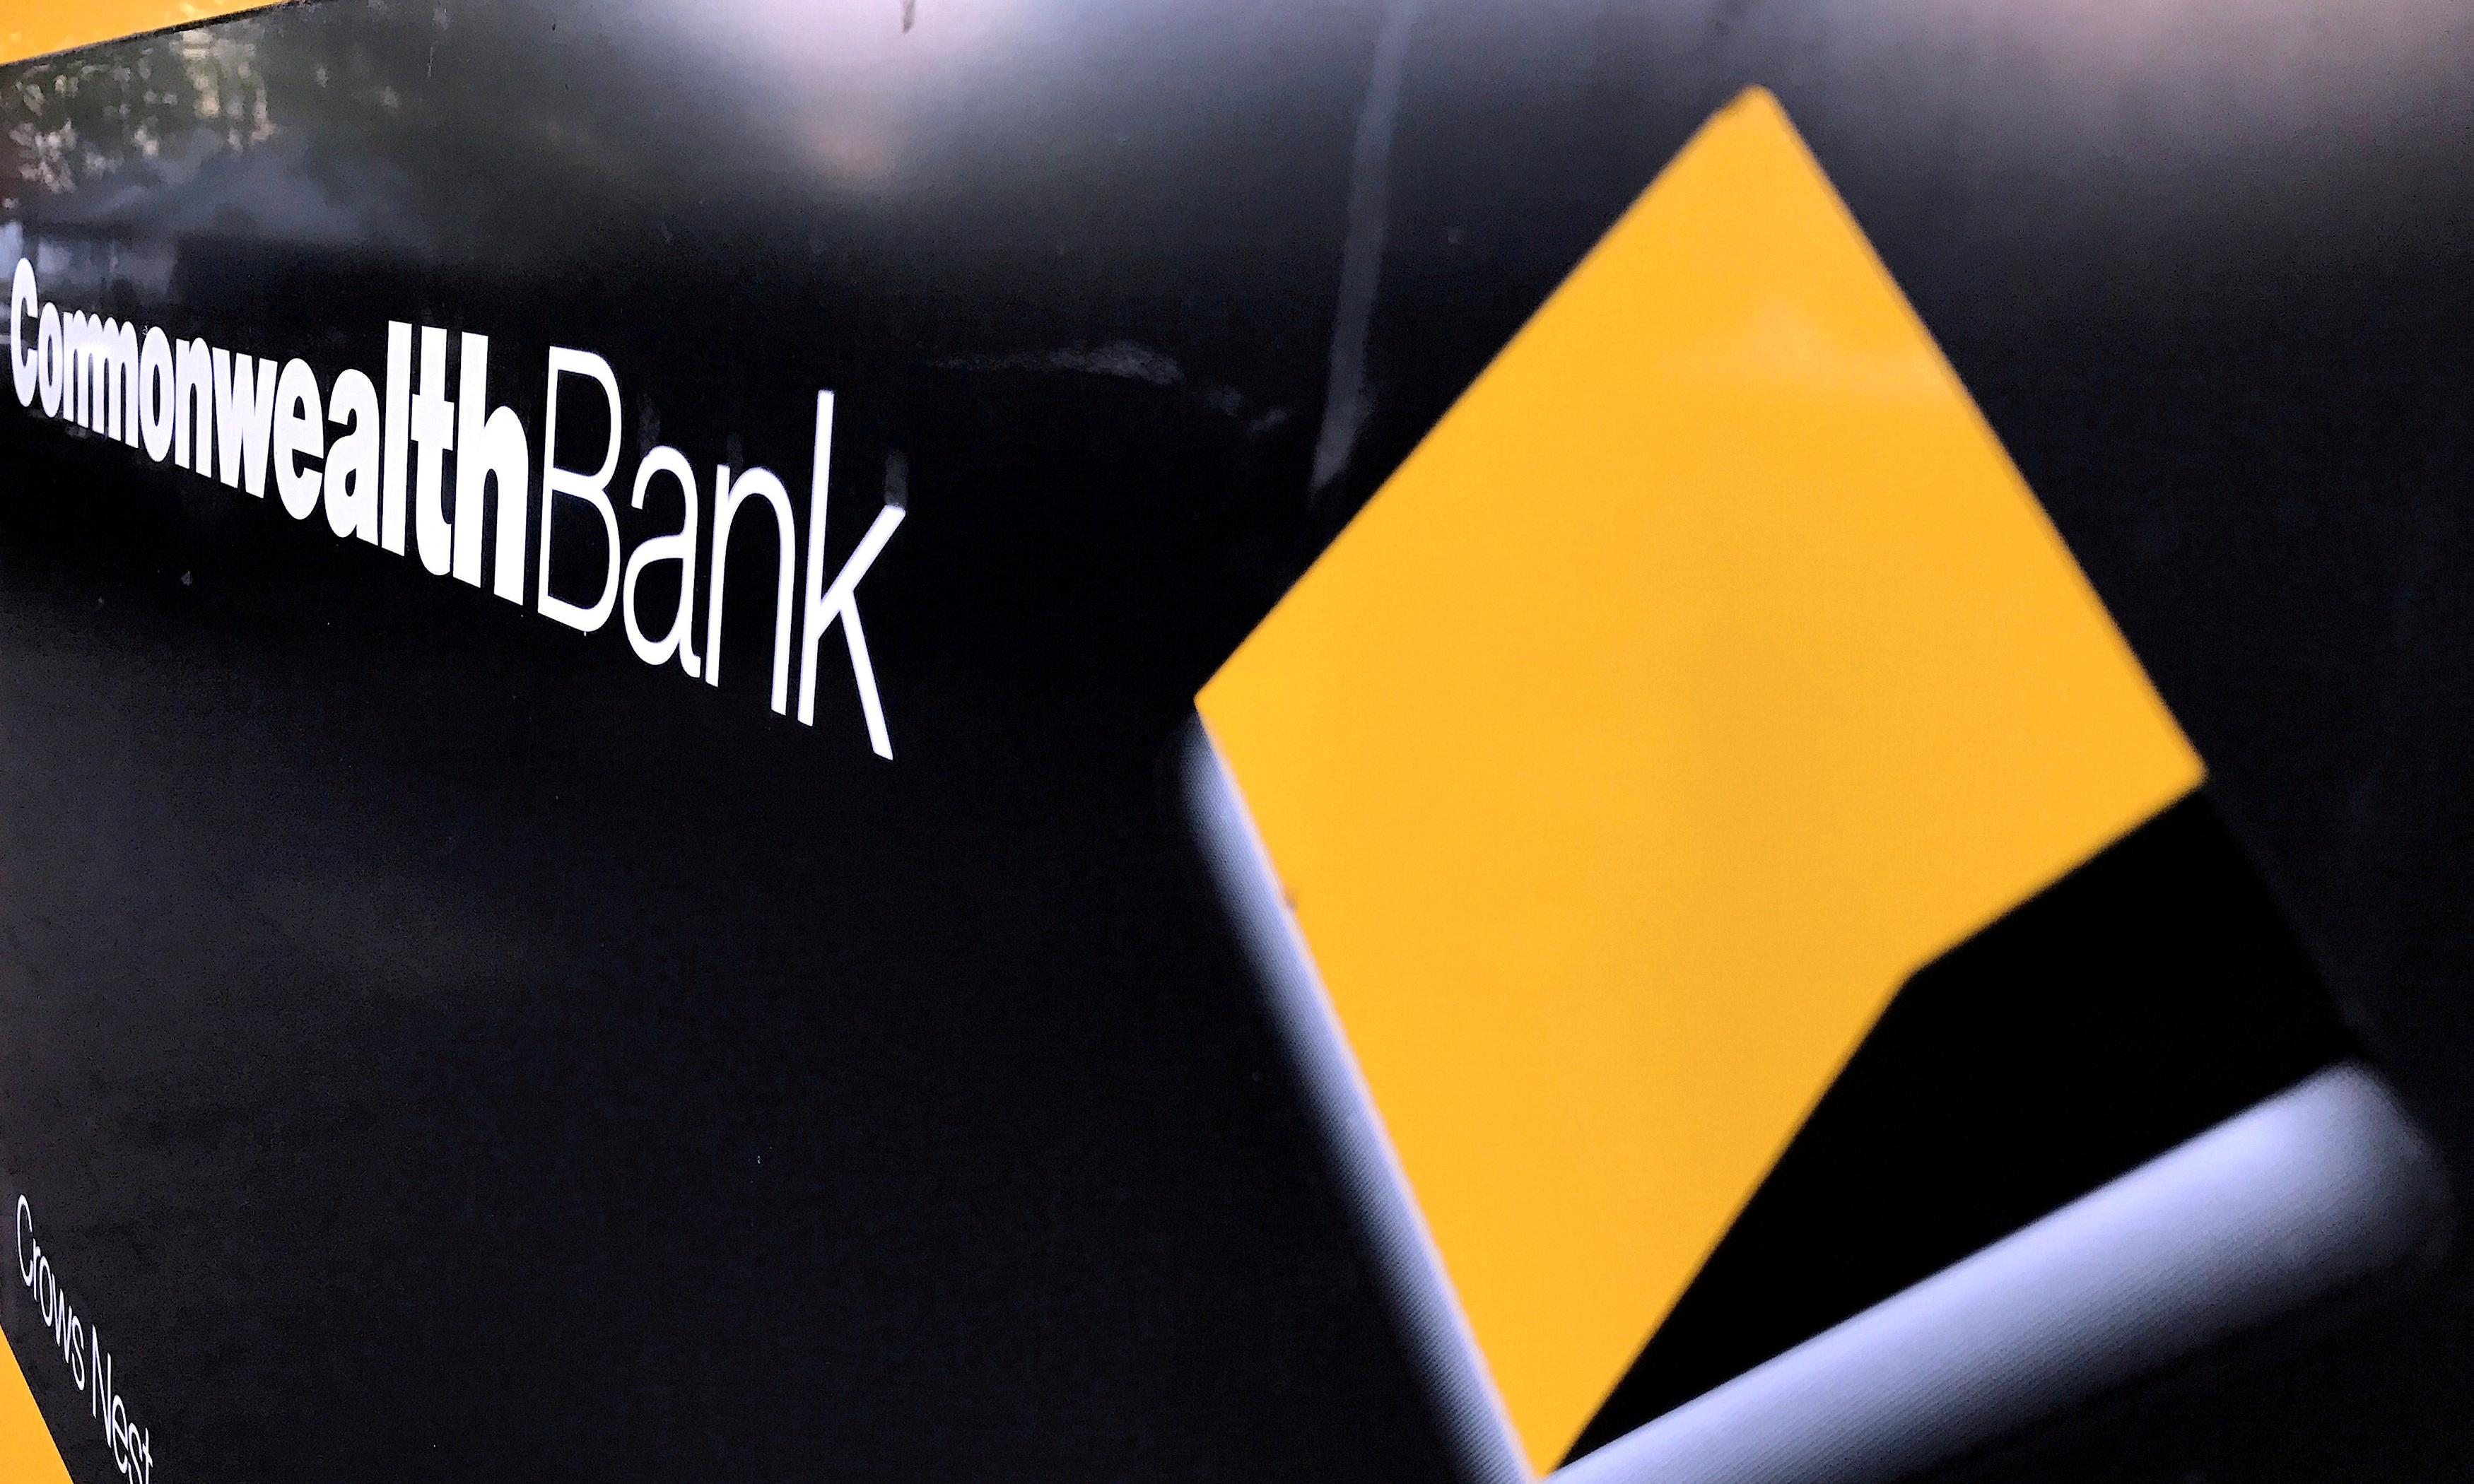 Commonwealth Bank insurance arm faces 87 criminal charges